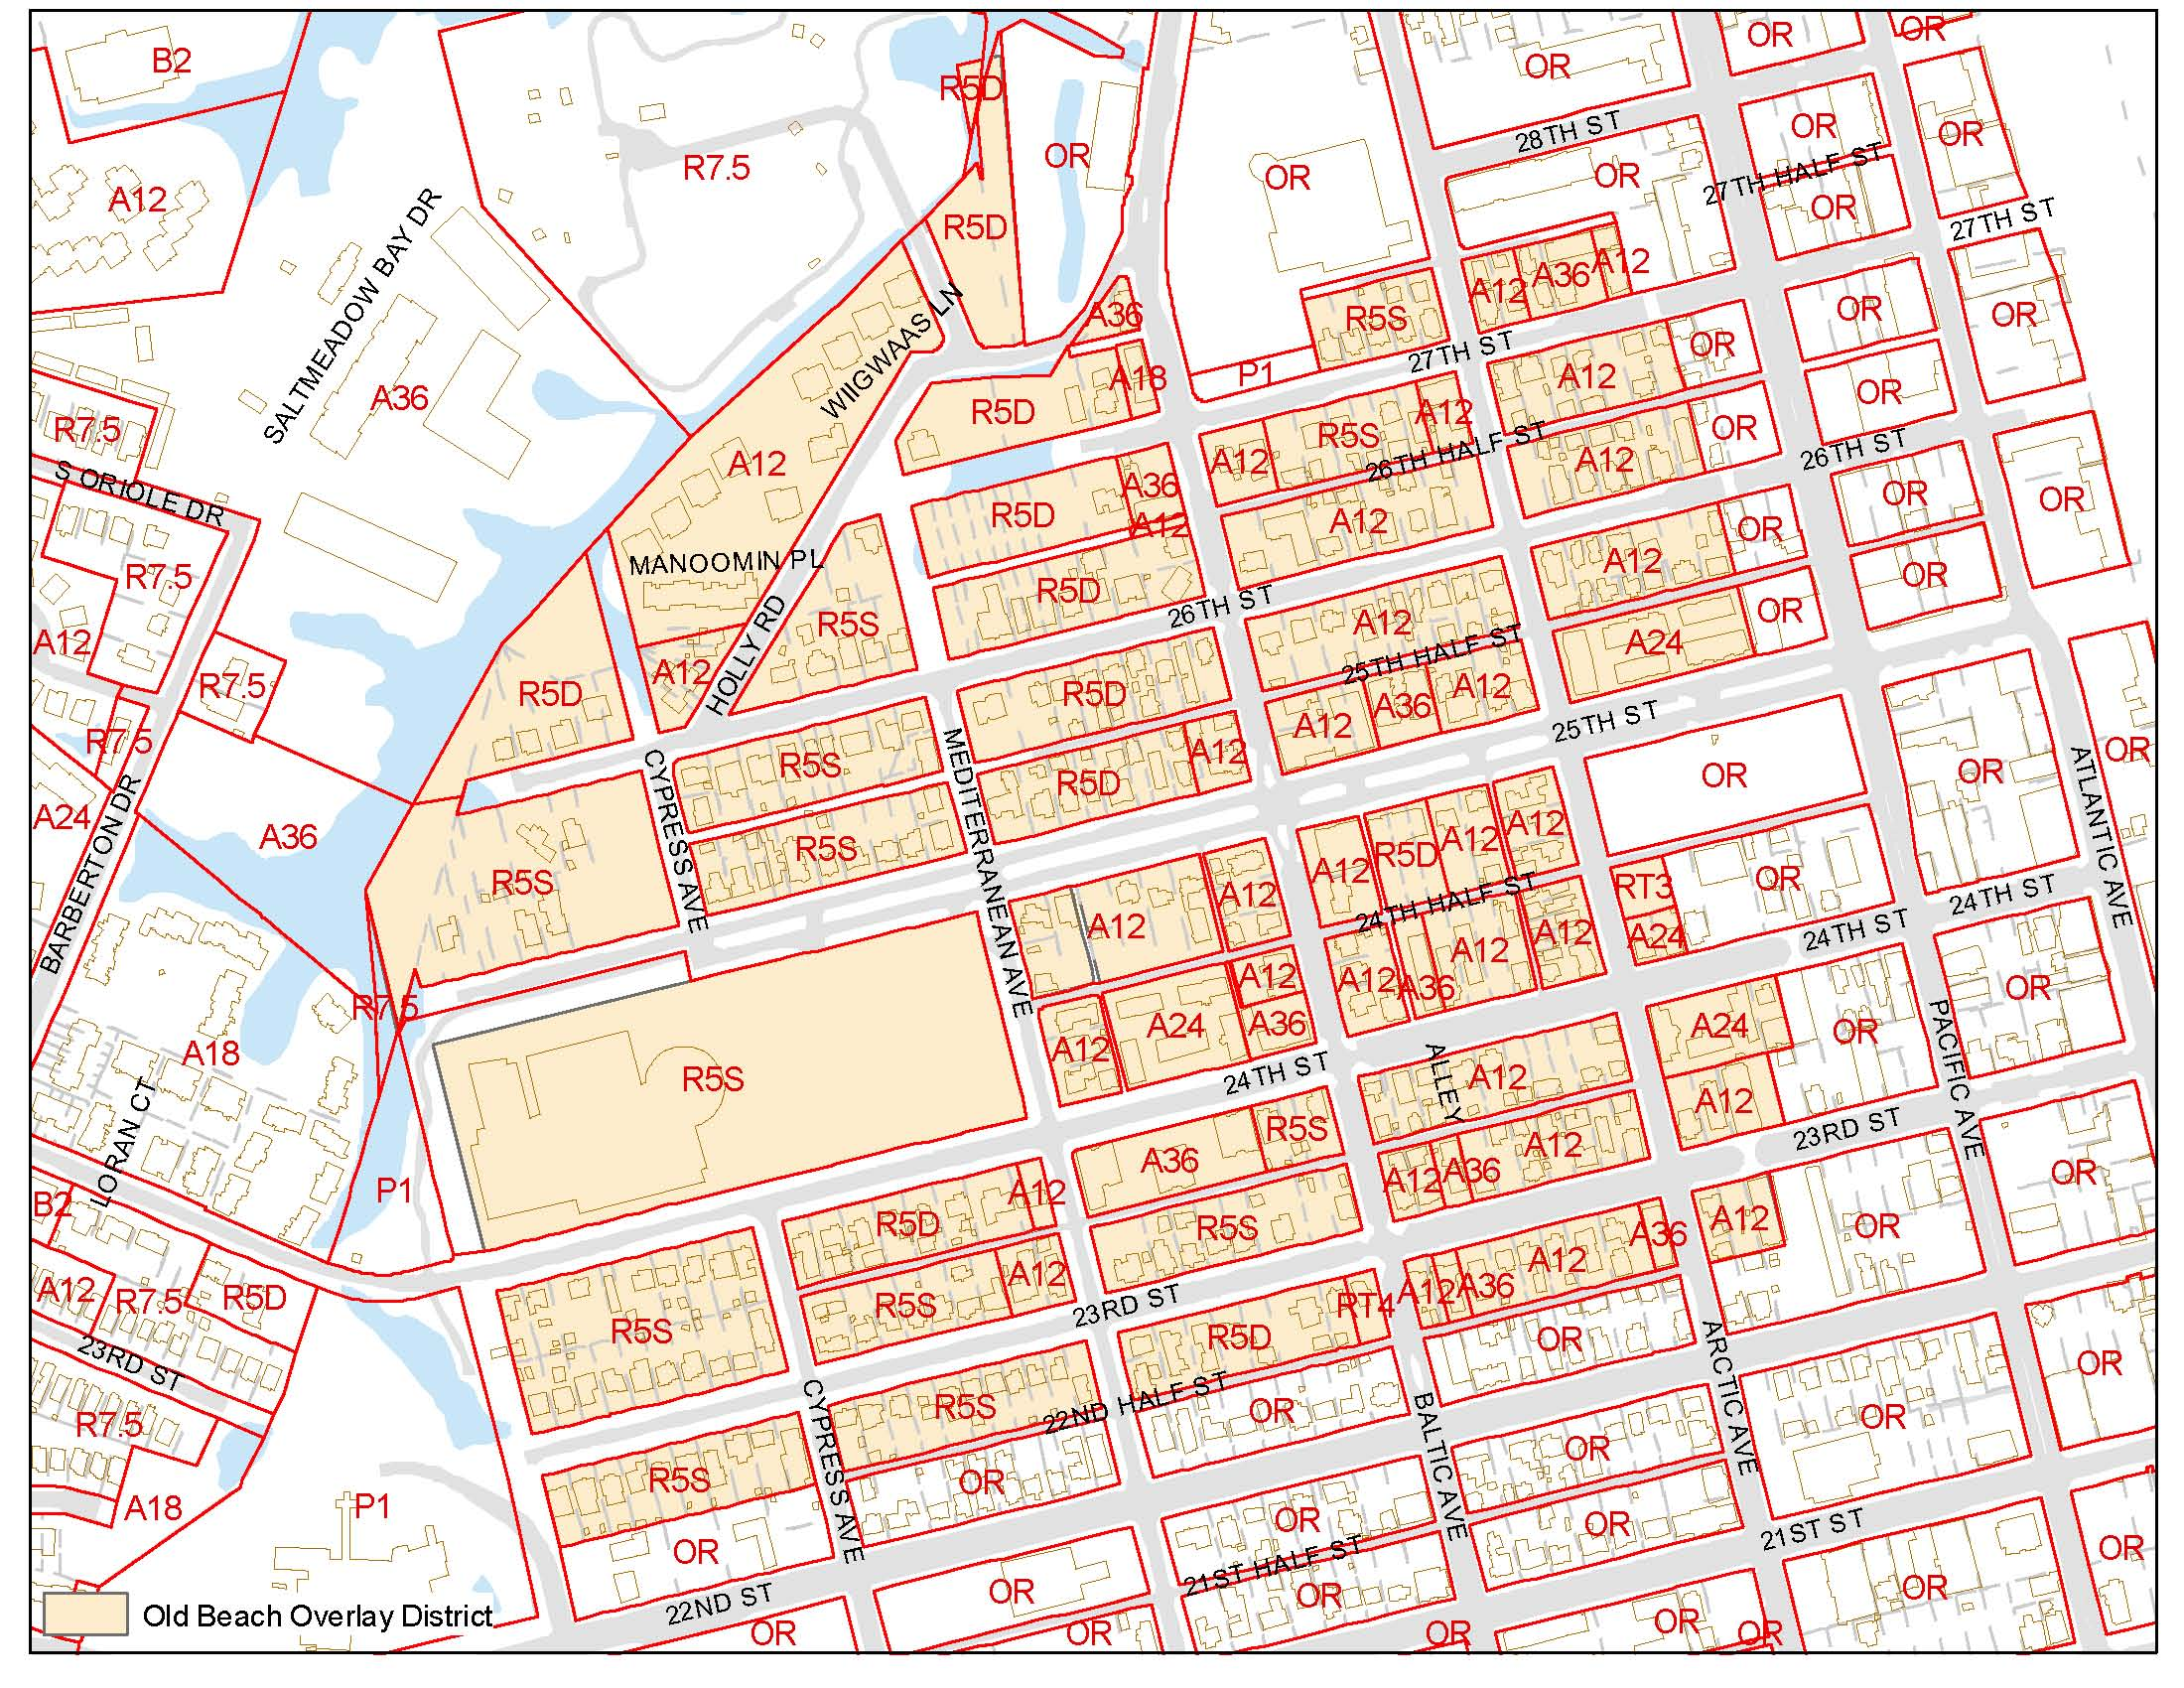 Old Beach Overlay District Zoning Map